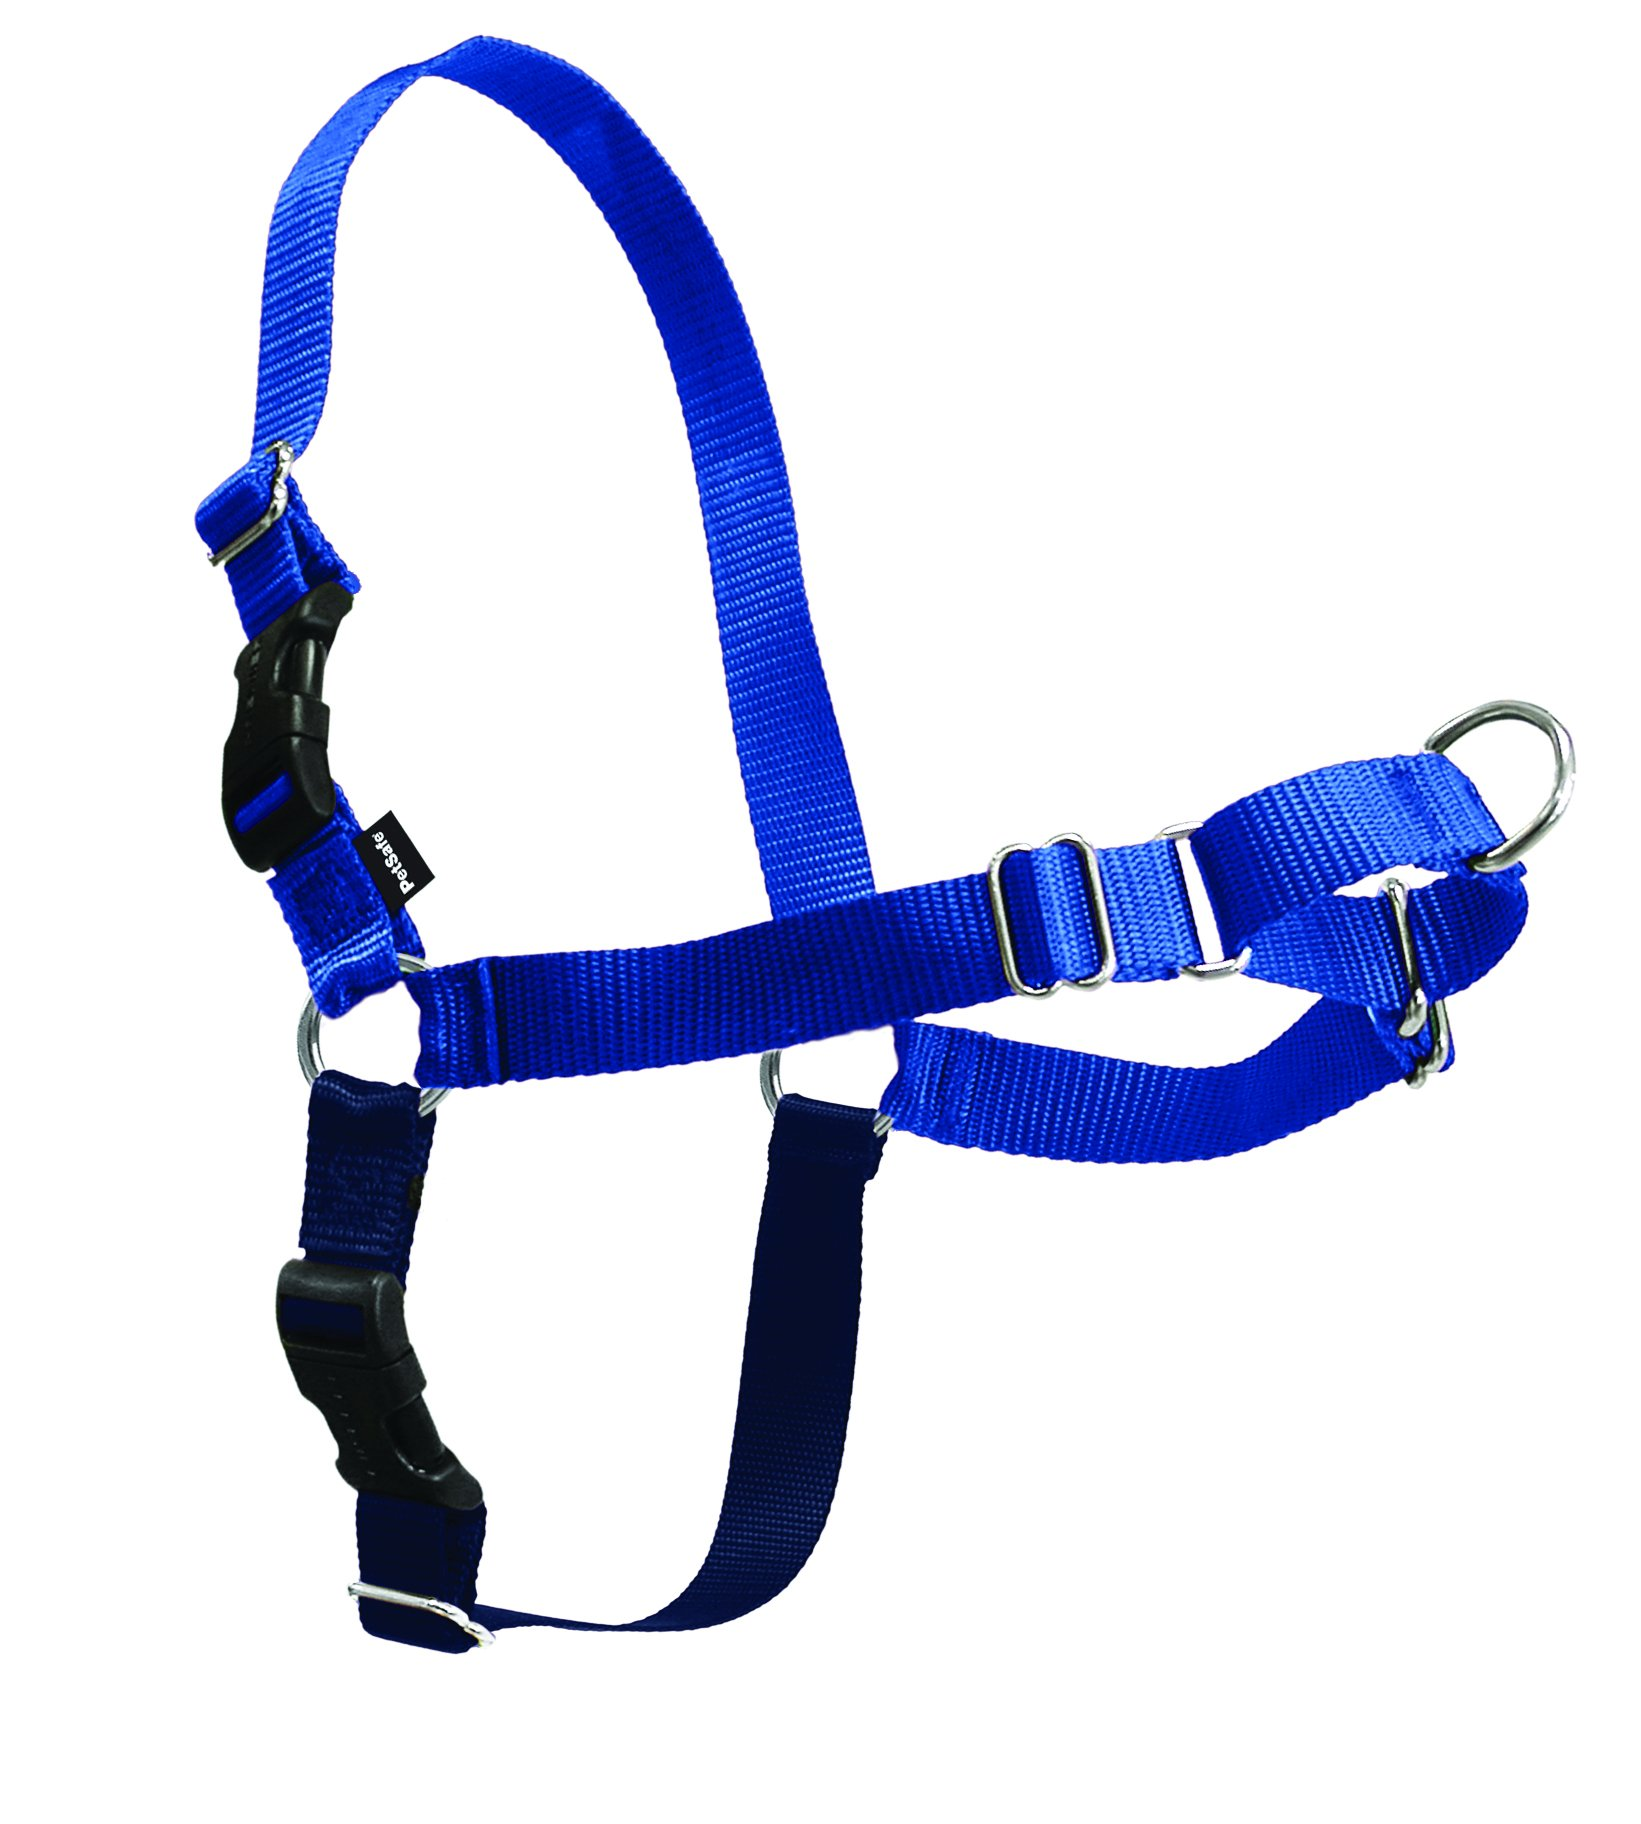 blue and black Easy Walk harness